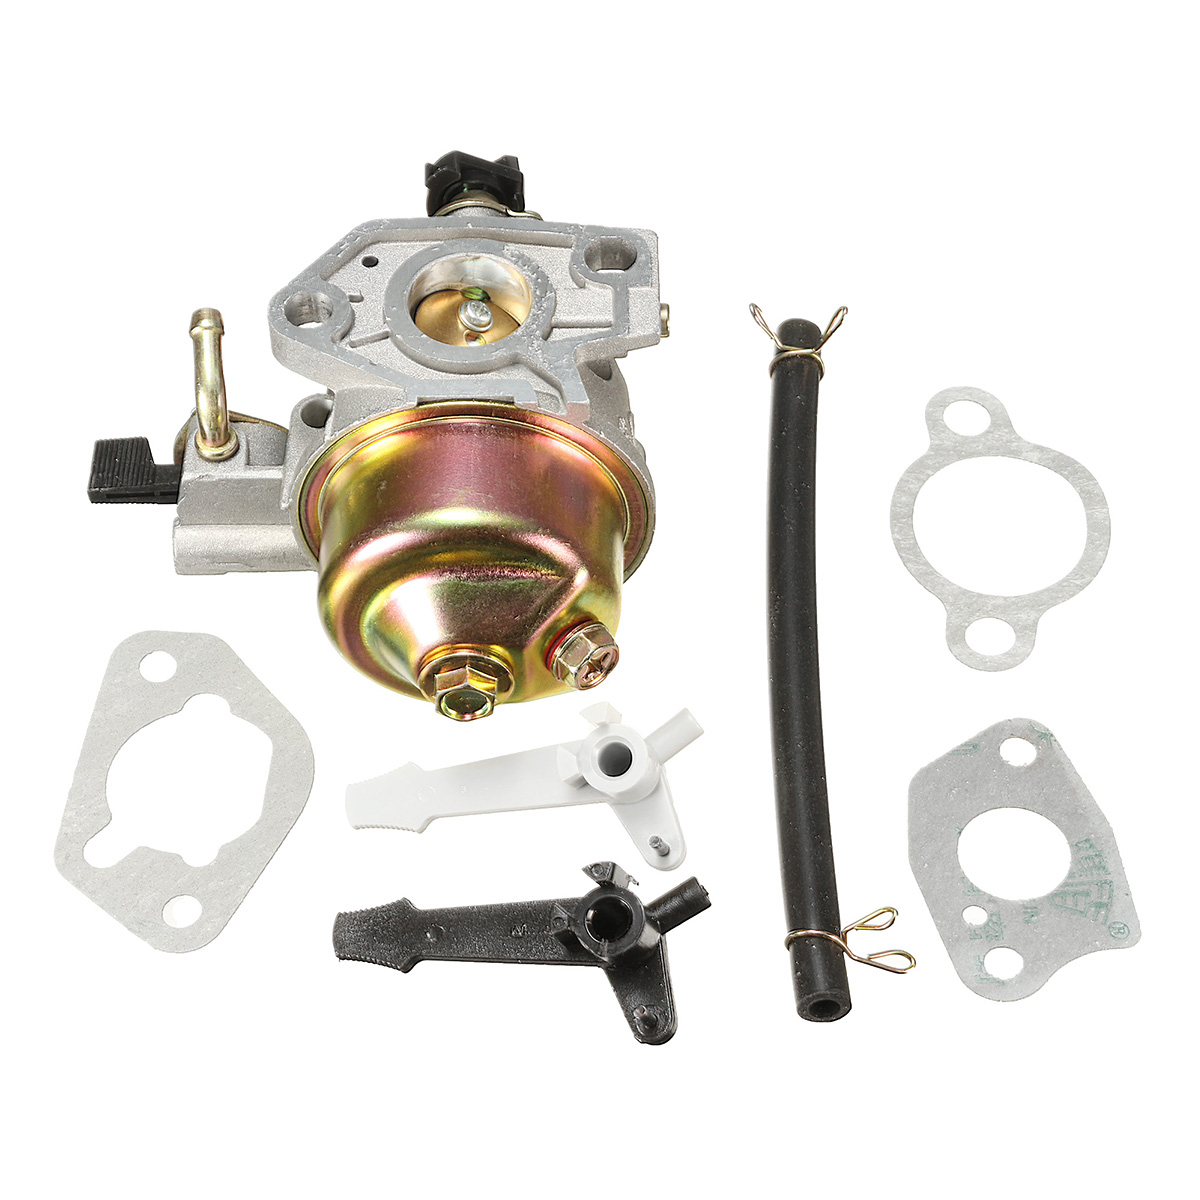 Buy Carburetor Carb With Gasket Kit For Honda GX270 9HP Engine